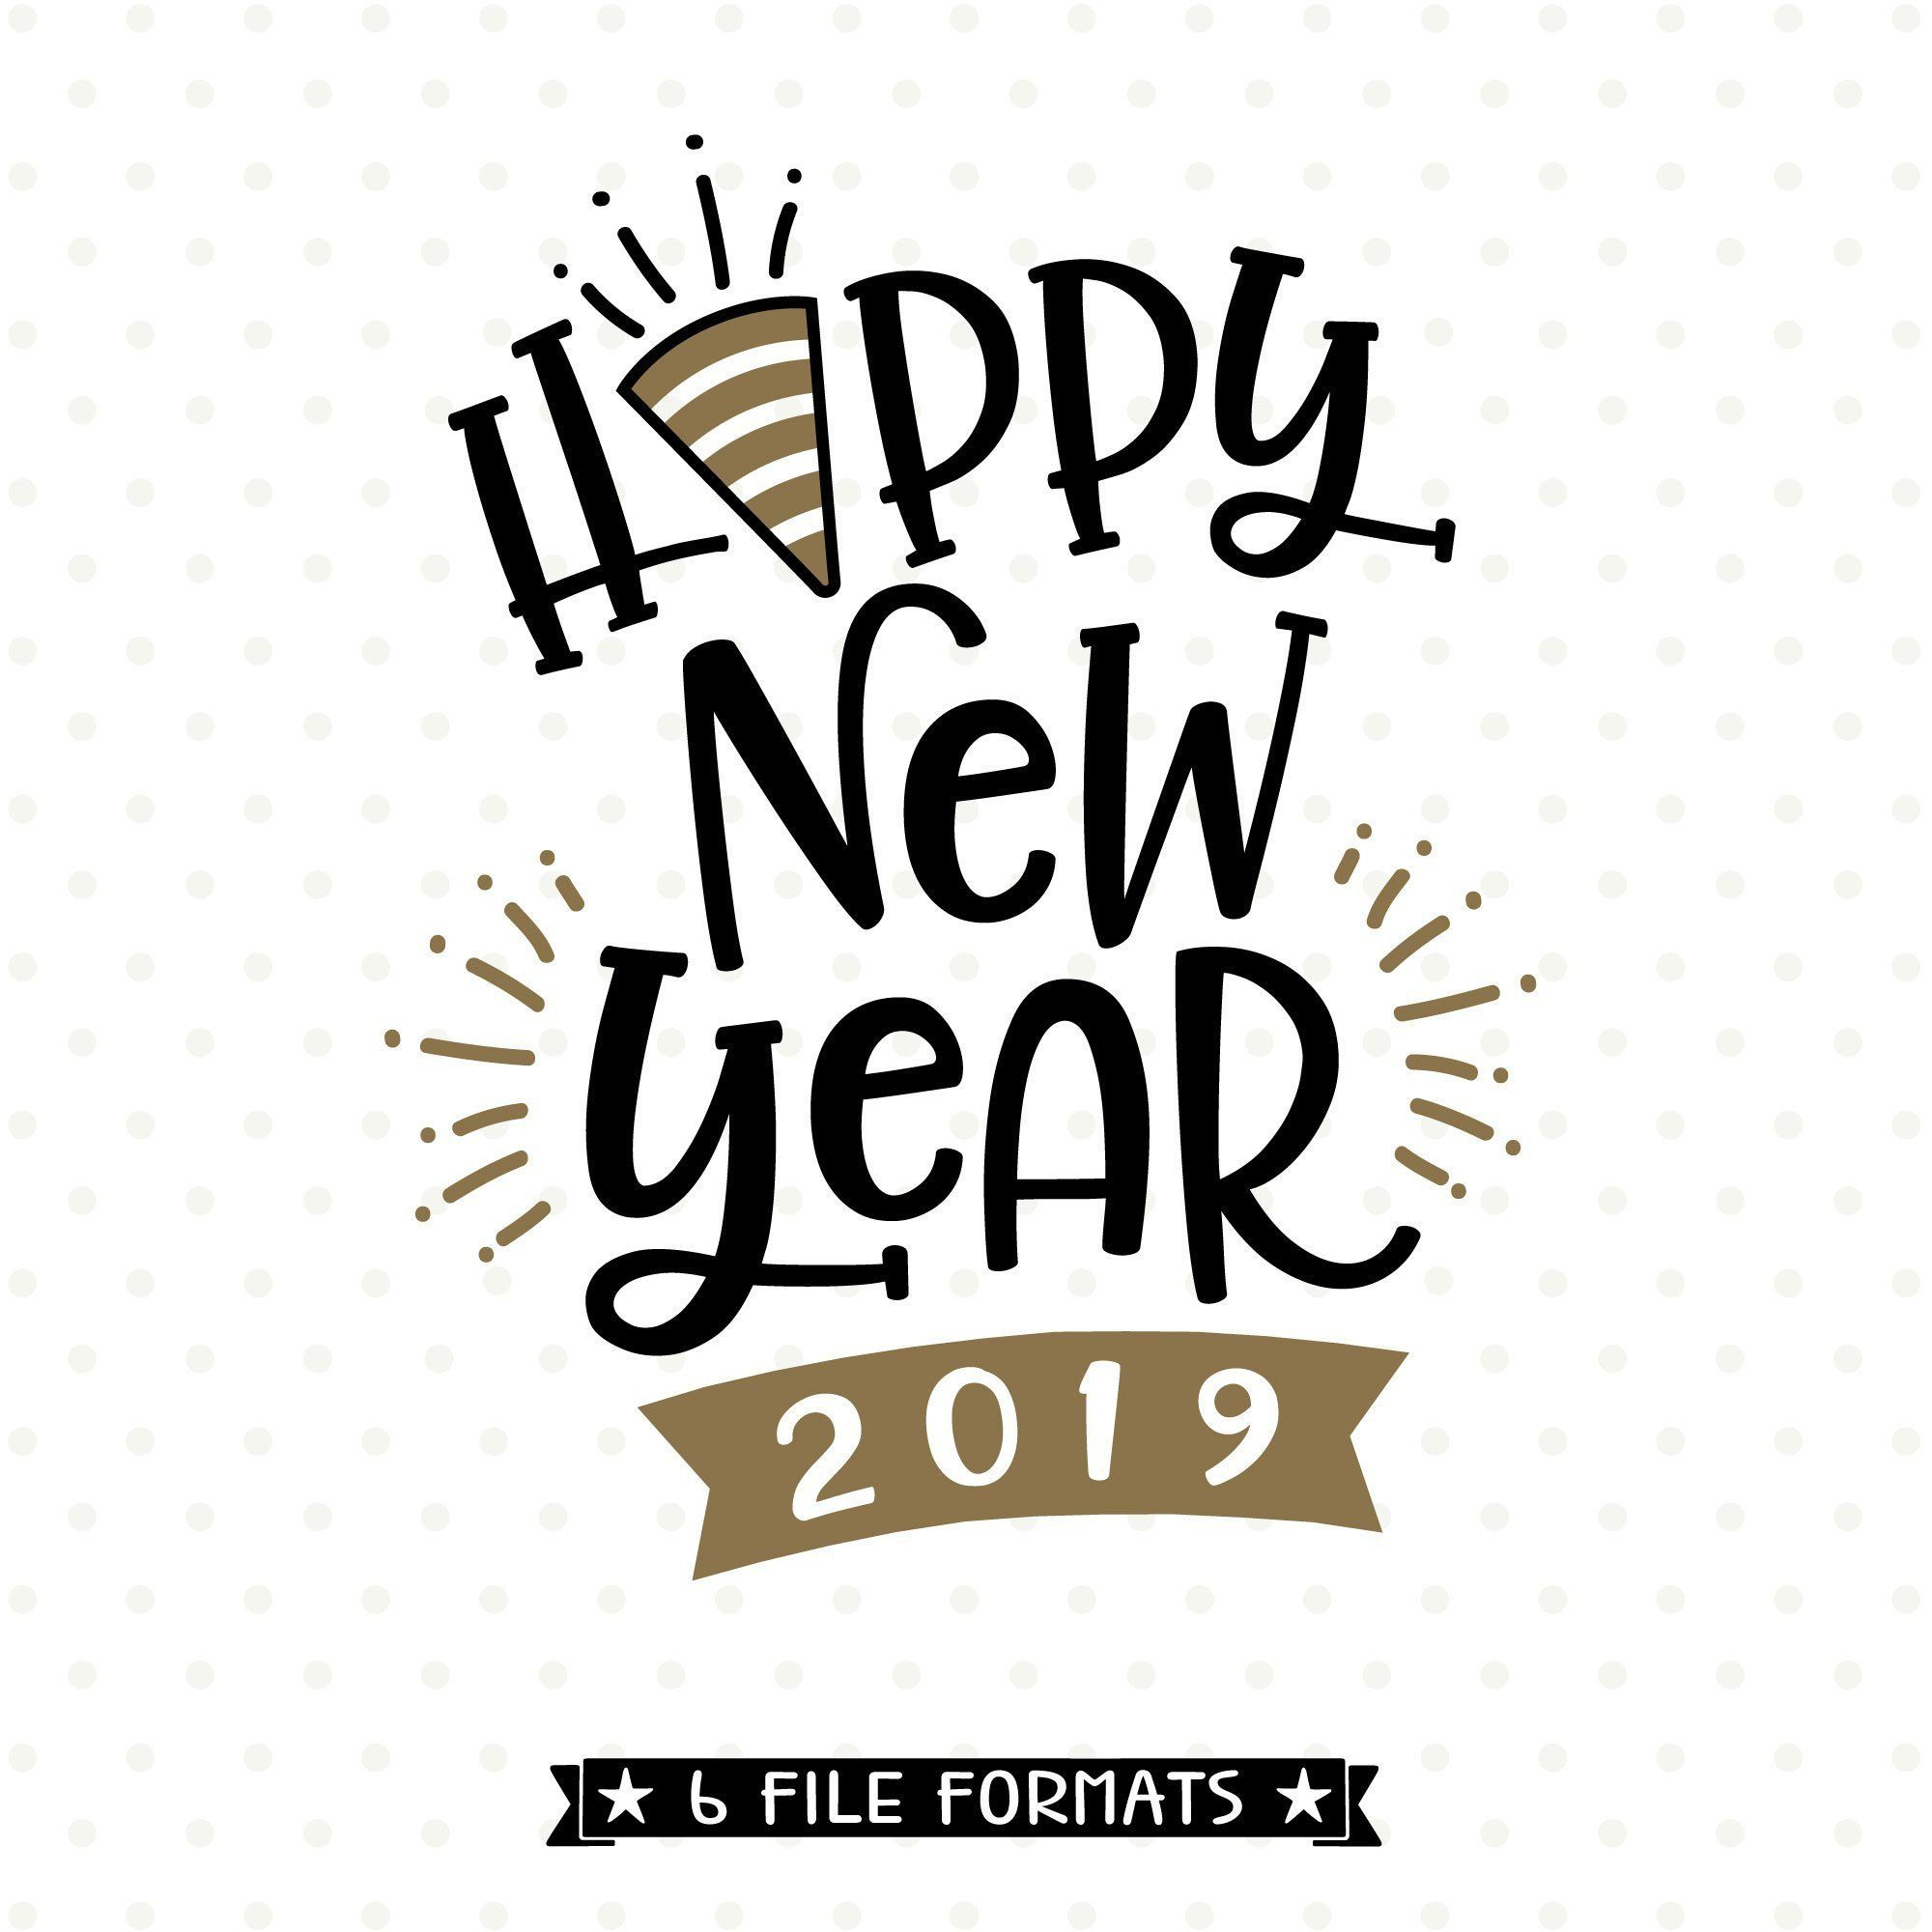 Happy New Year 2019 Clipart to you.